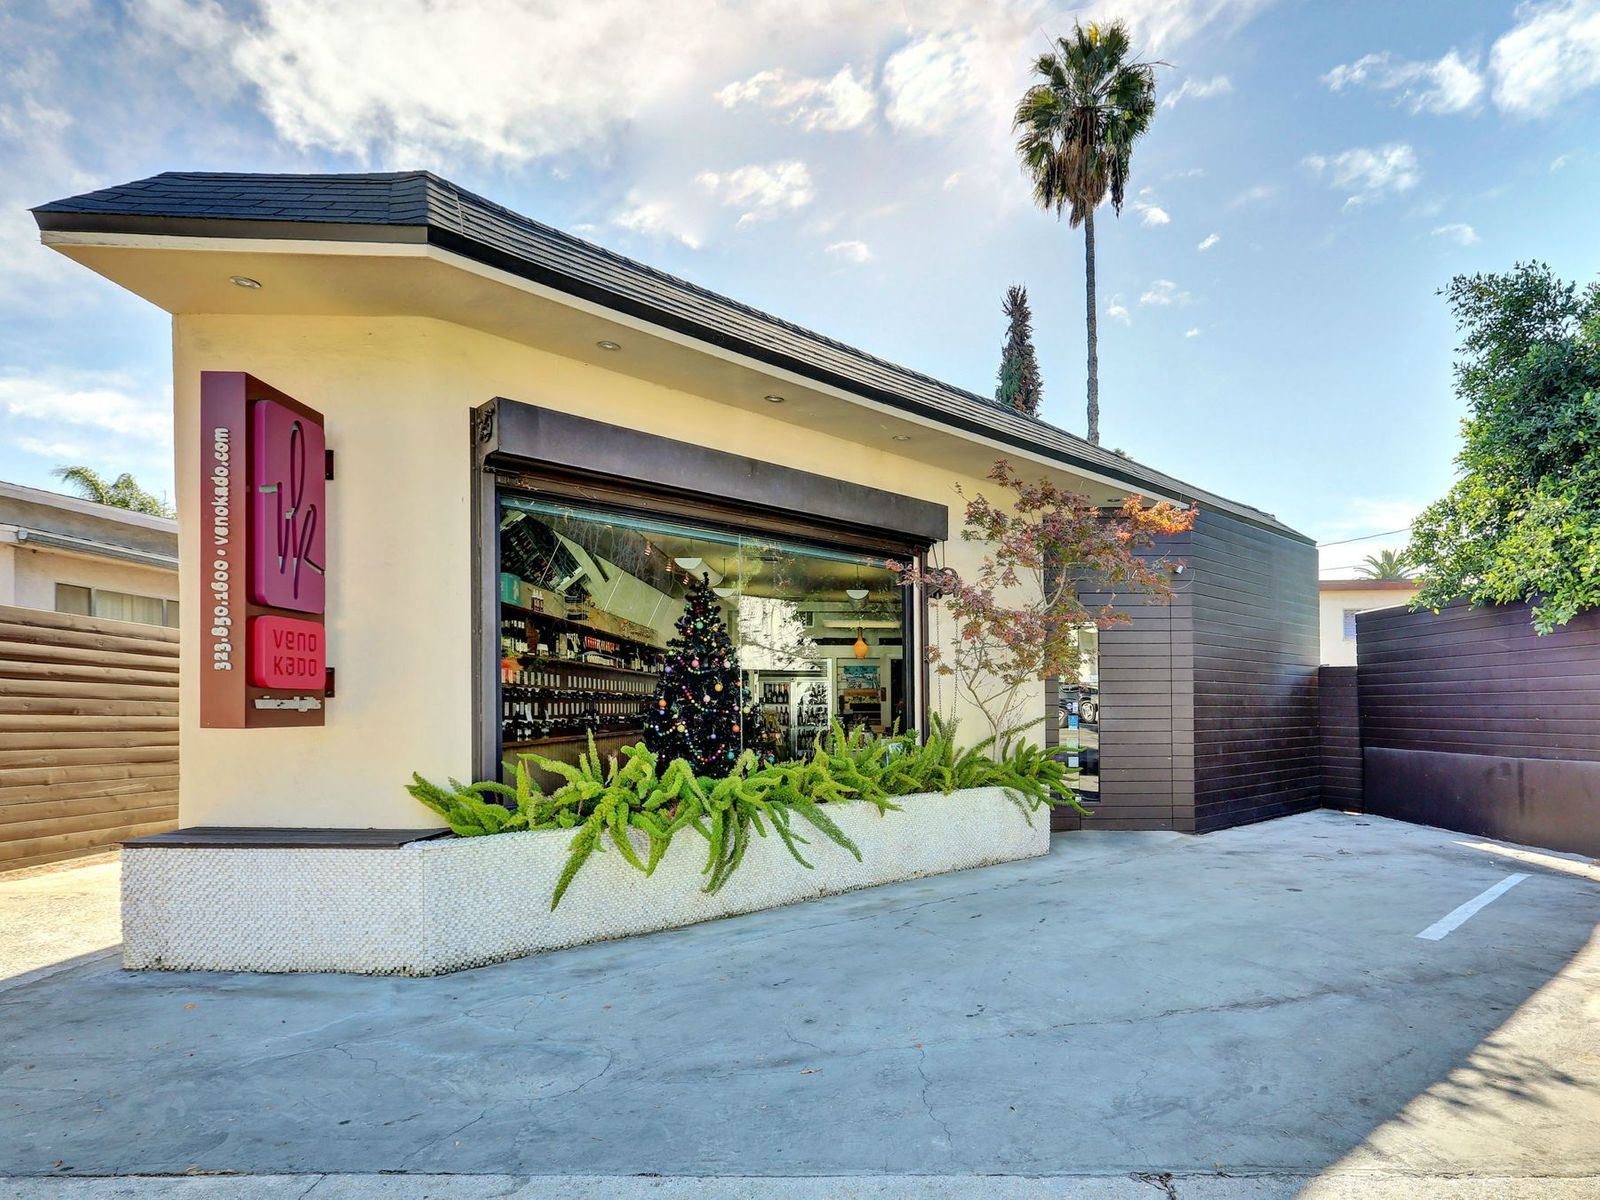 Great WeHo Location, West Hollywood CA Multiple Units - Los Angeles Real Estate